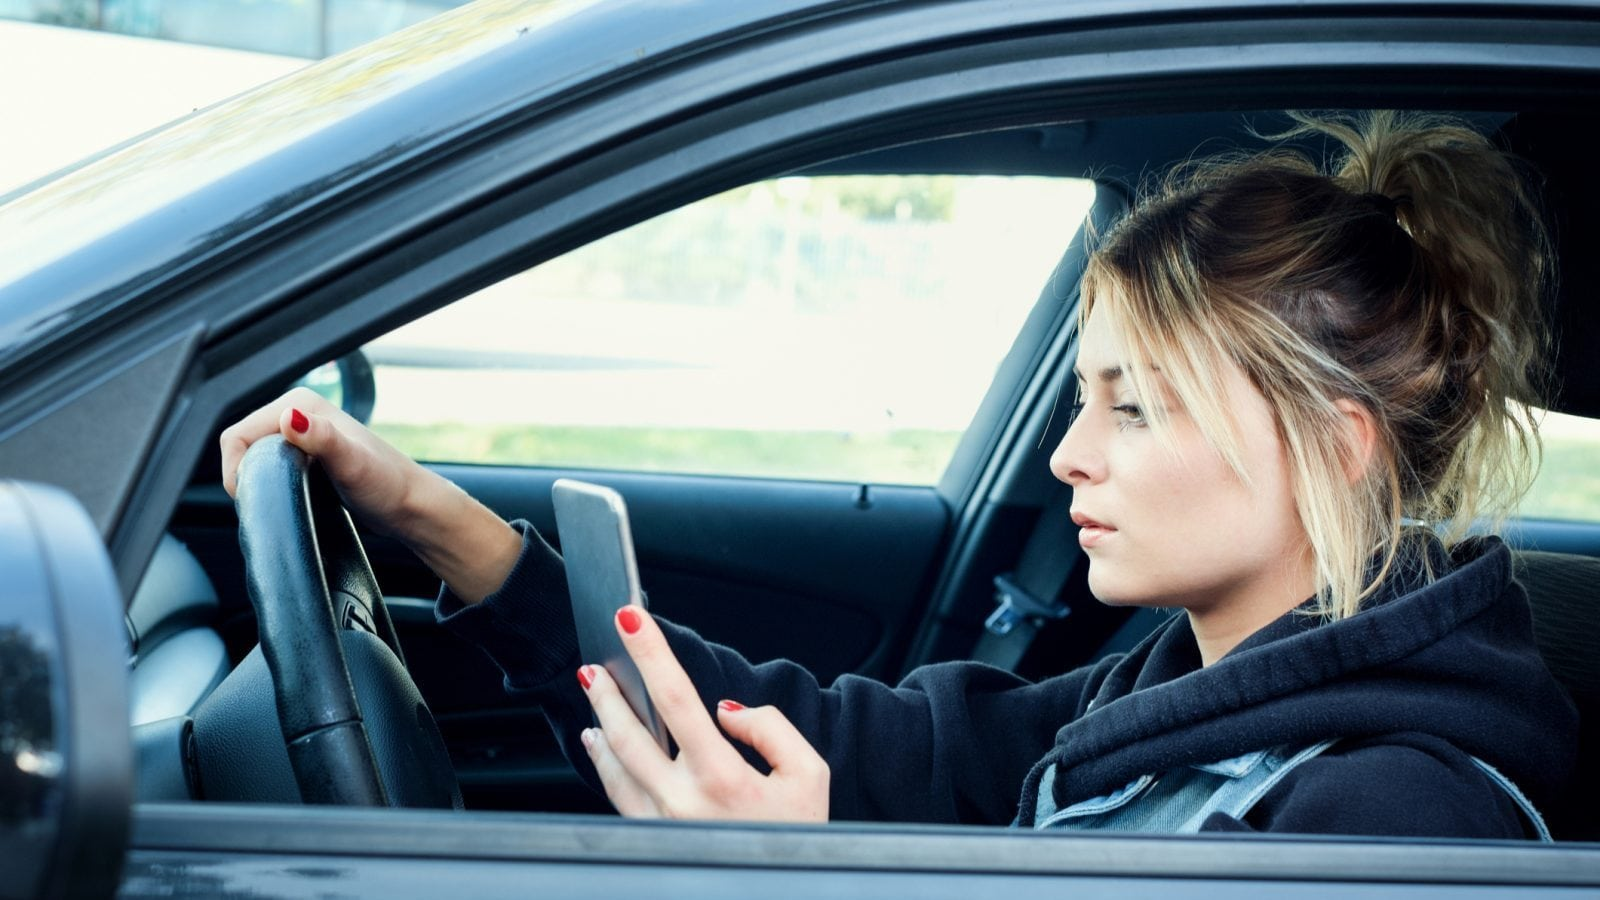 Distracted Woman Driving Stock Photo